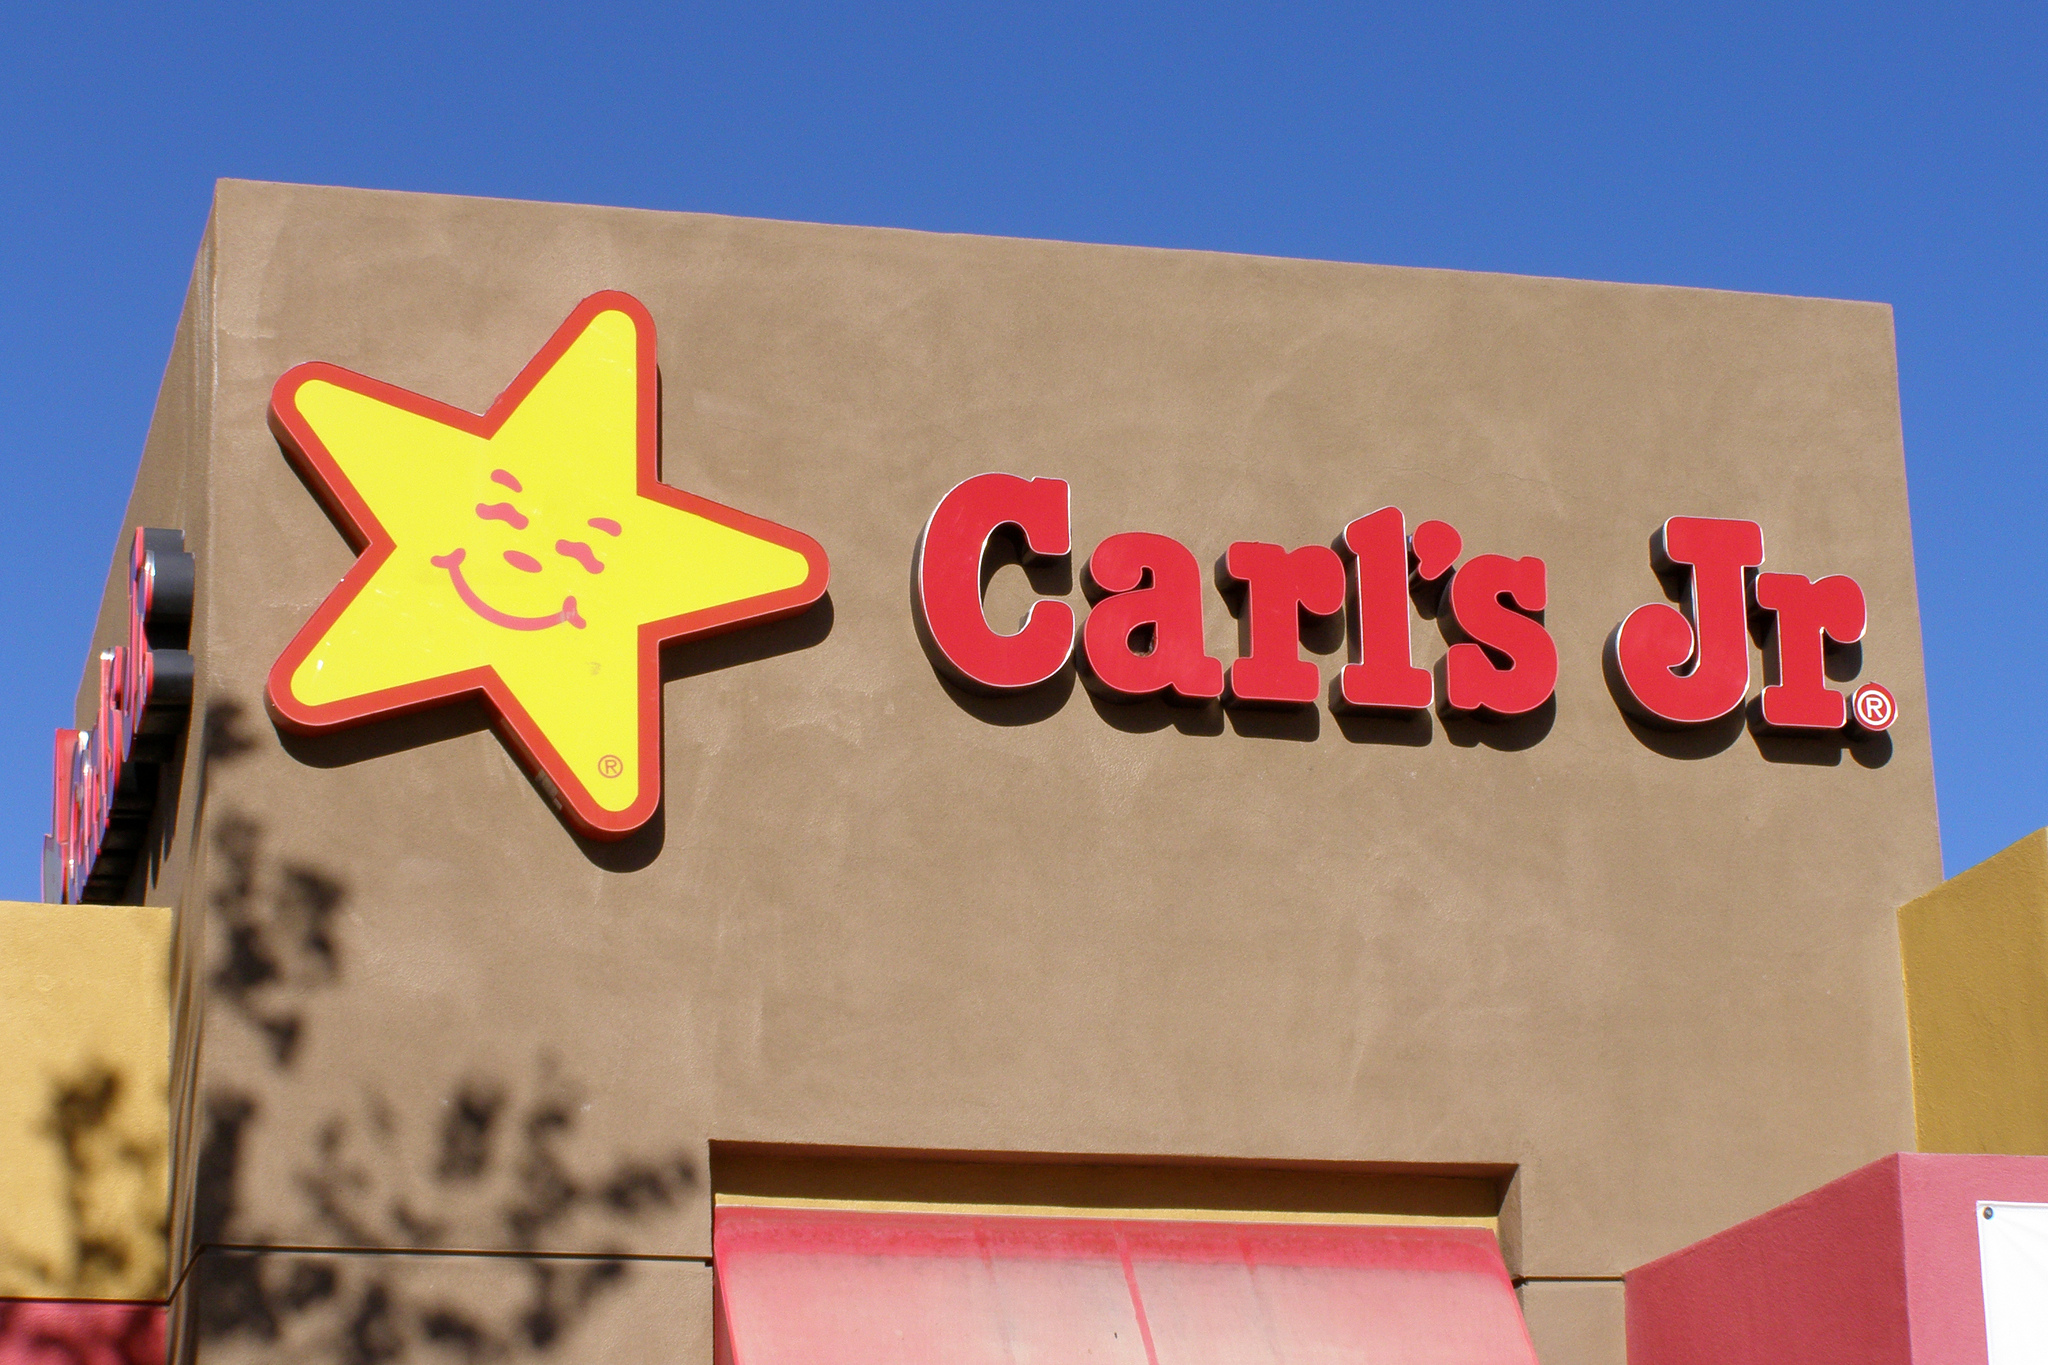 A Carl's Jr restaurant in Calfornia, with its yellow star logo